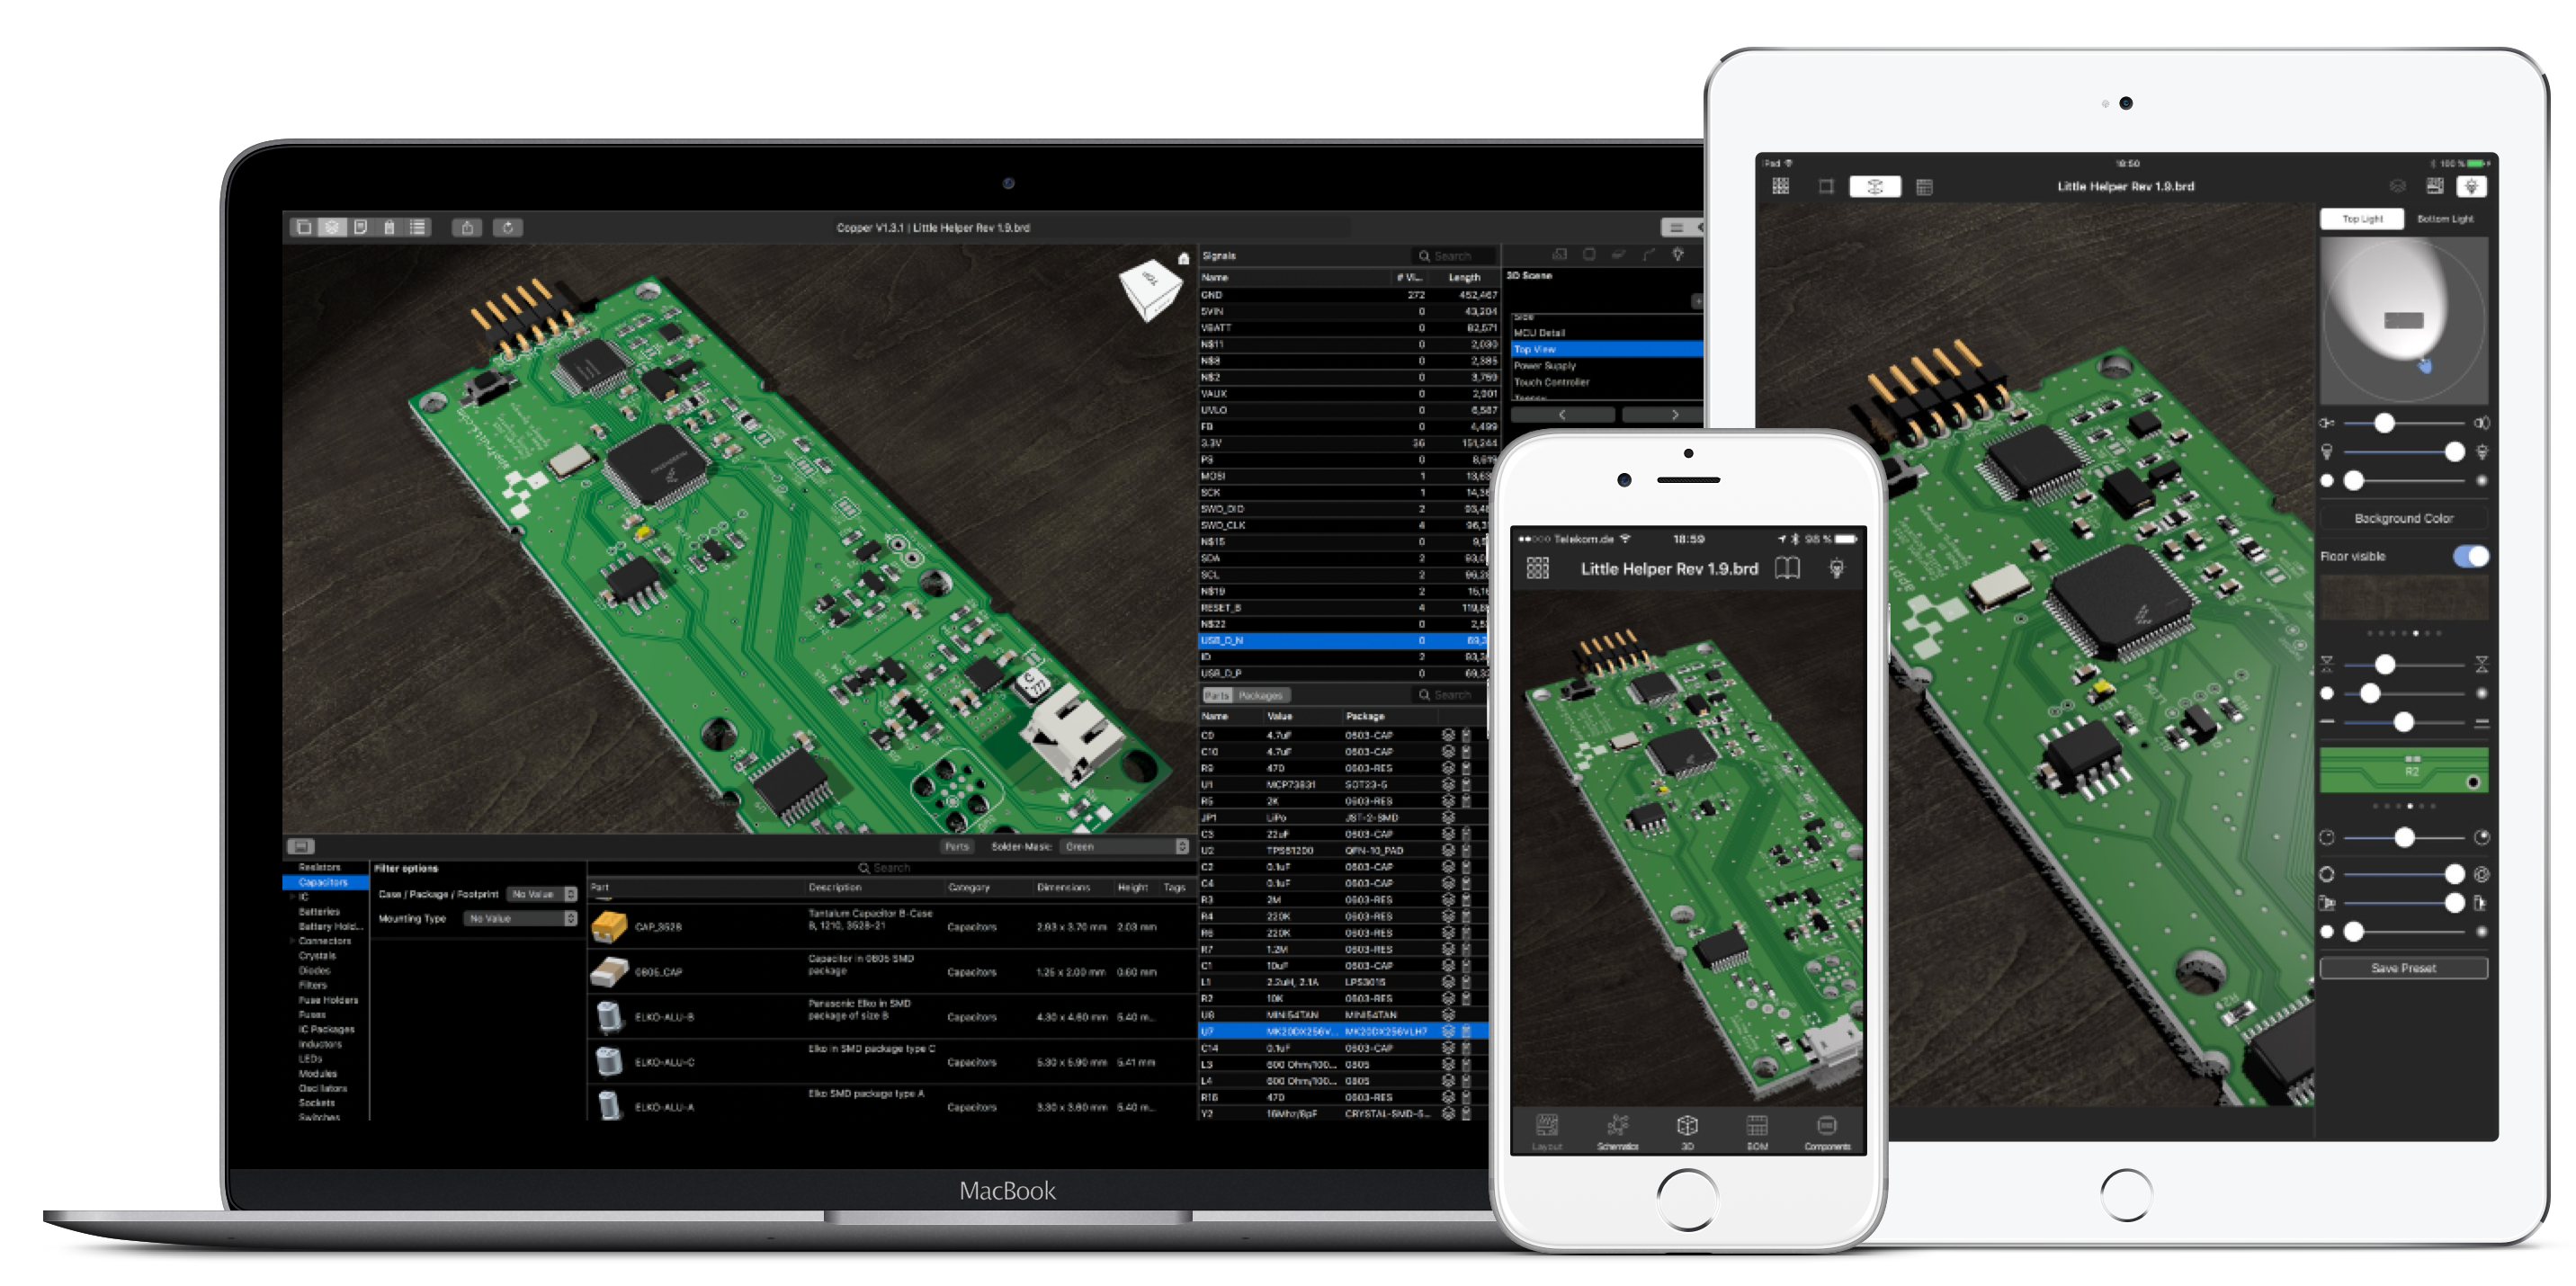 Copper for iOS released! - Copper - Open and view EAGLE files on ...